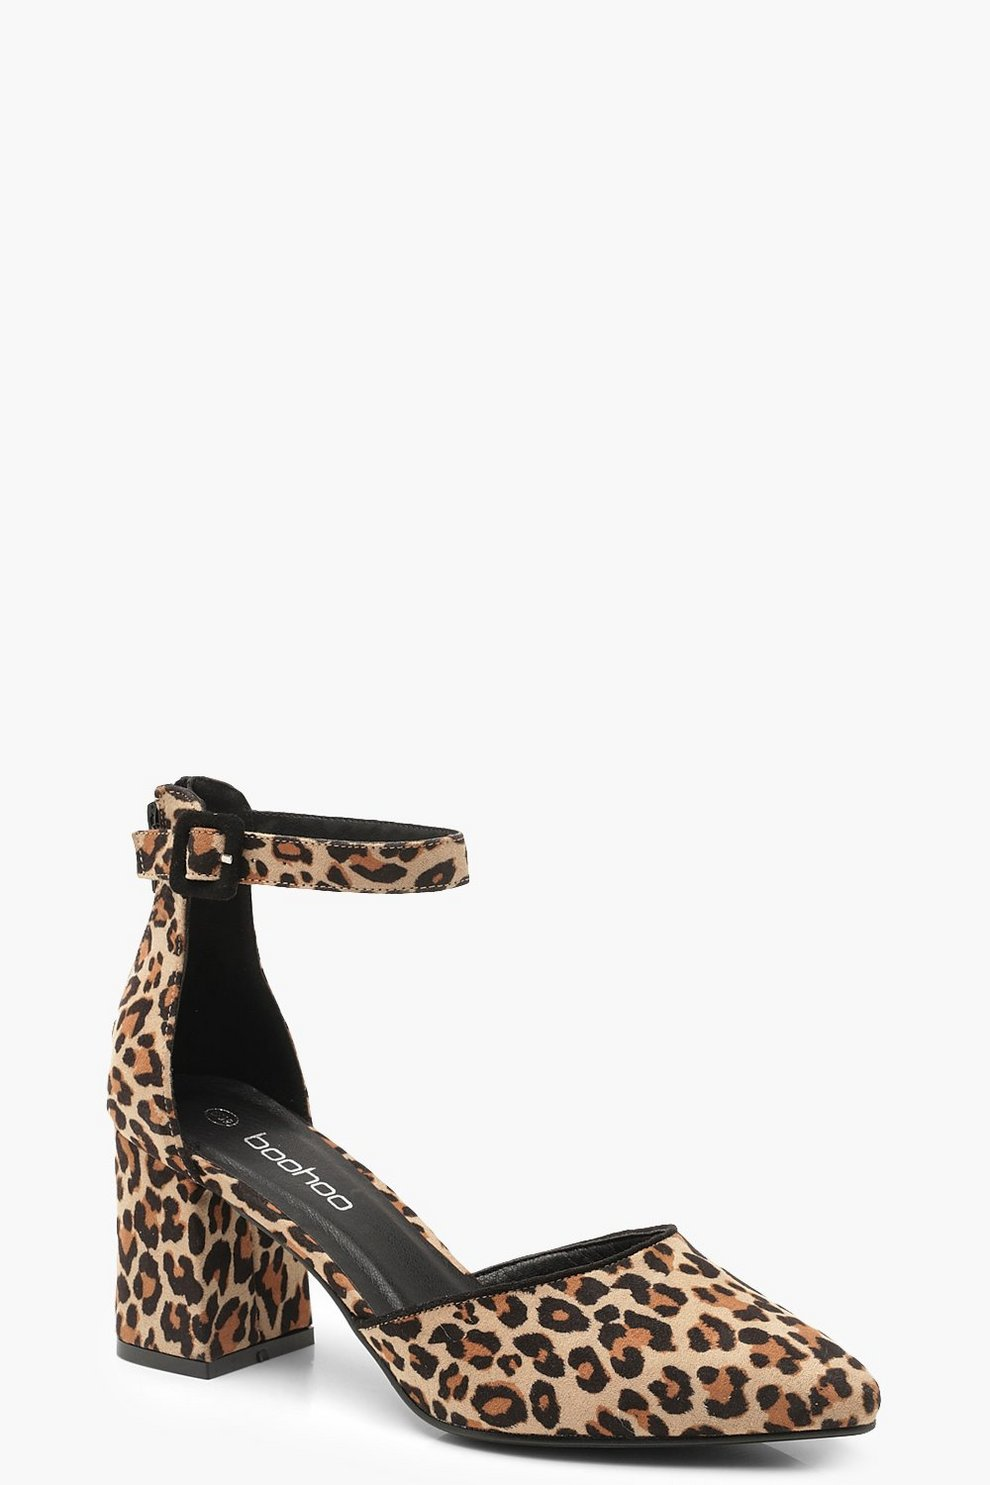 152c0d17ec Leopard Print Pointed Low Block Heel Ballets | Boohoo